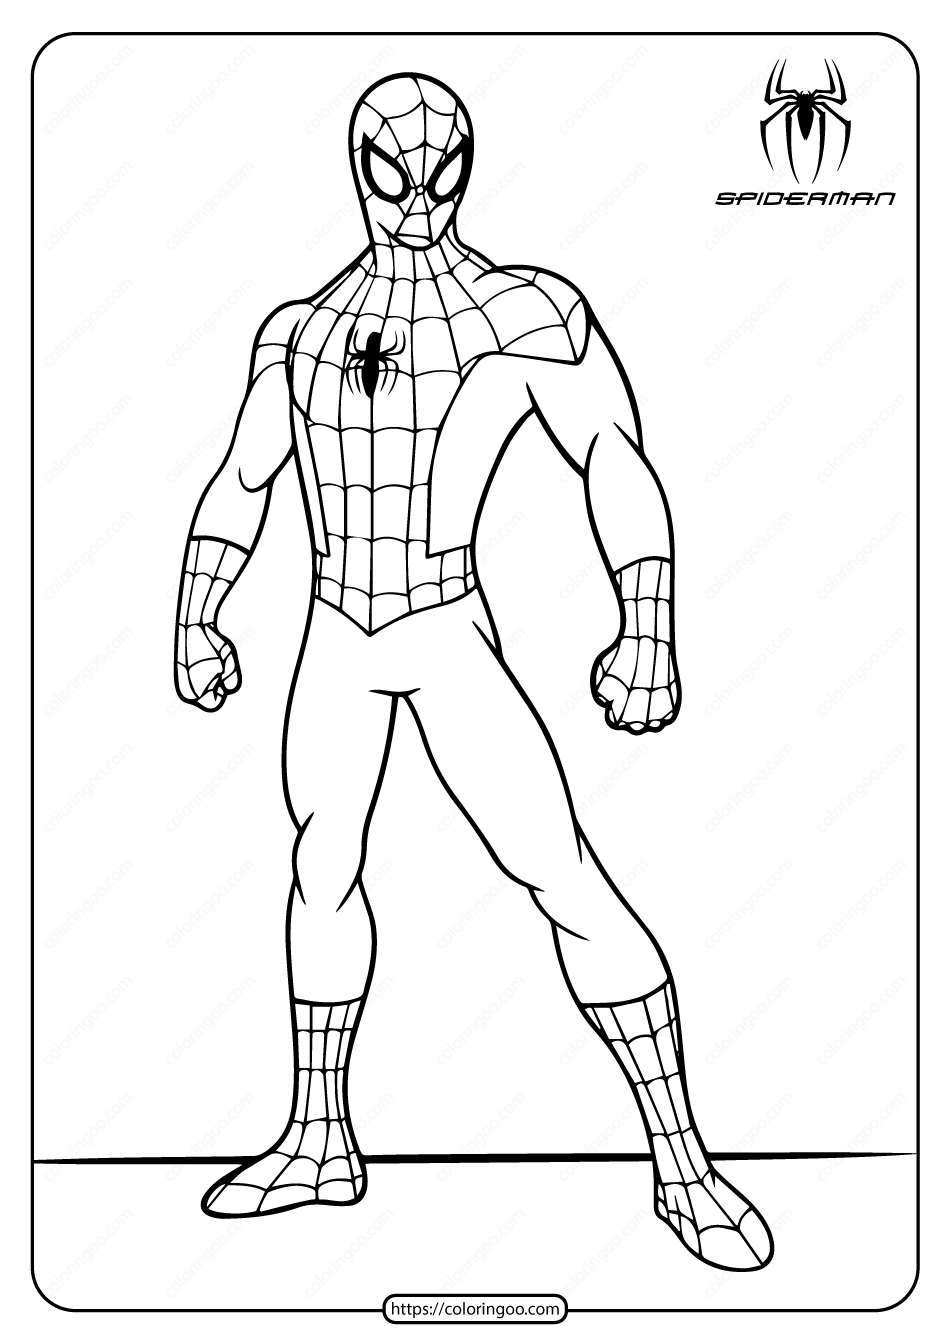 spiderman picture to color spiderman free to color for kids spiderman kids coloring to picture spiderman color